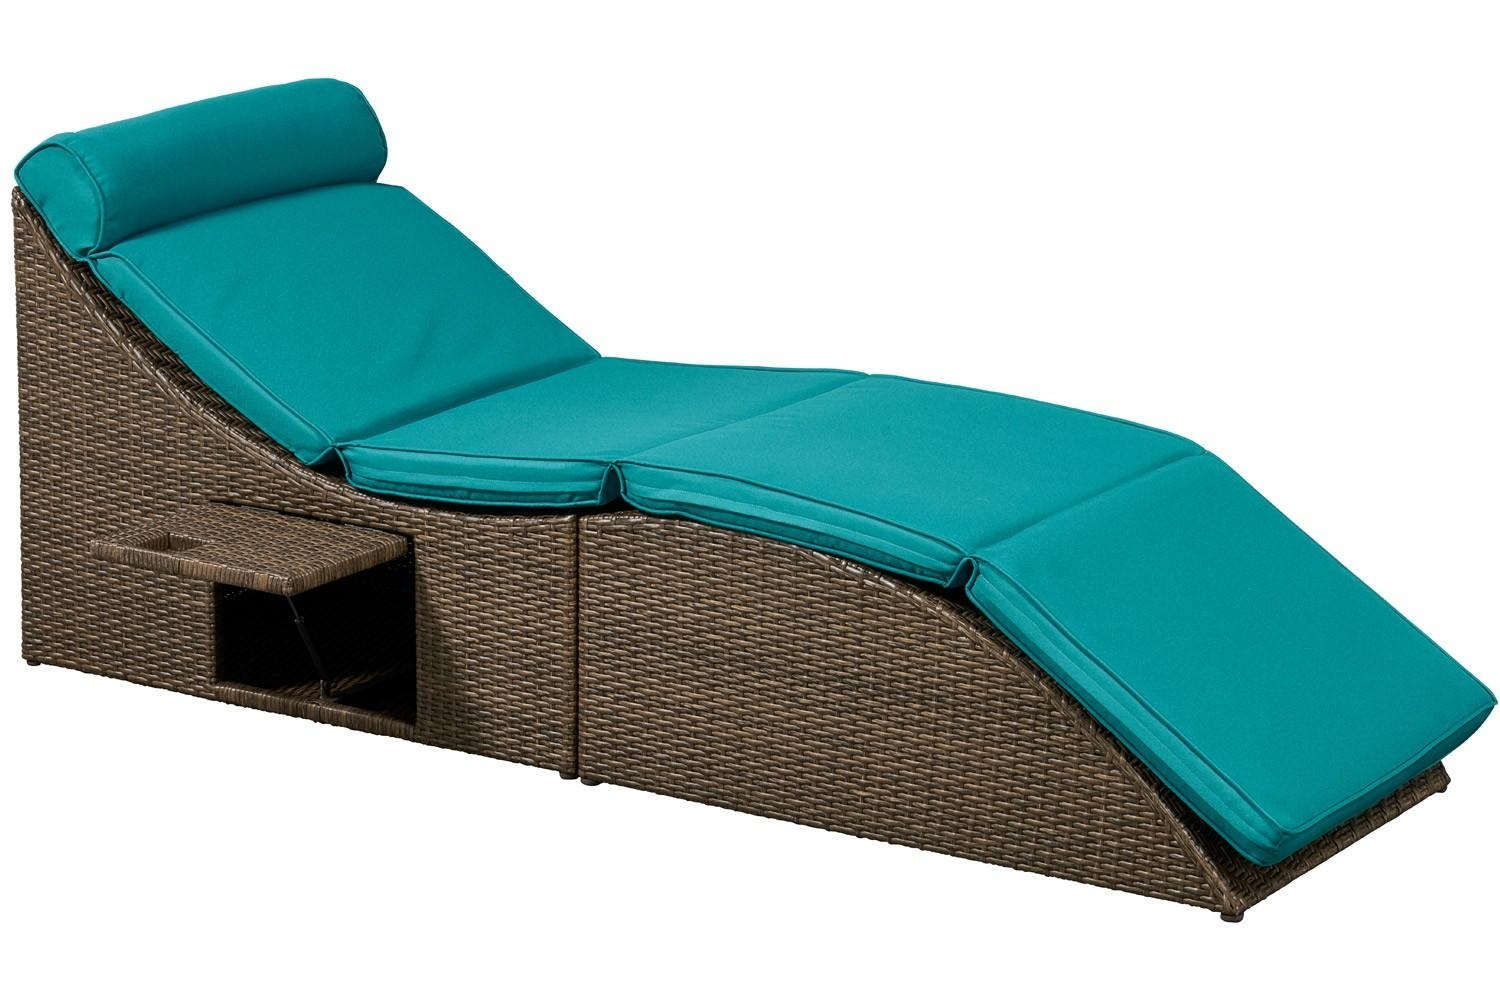 Outdoor Futon Sofa Bed Chaise Lounger Bodega With Sofa Lounger Beds (View 17 of 20)